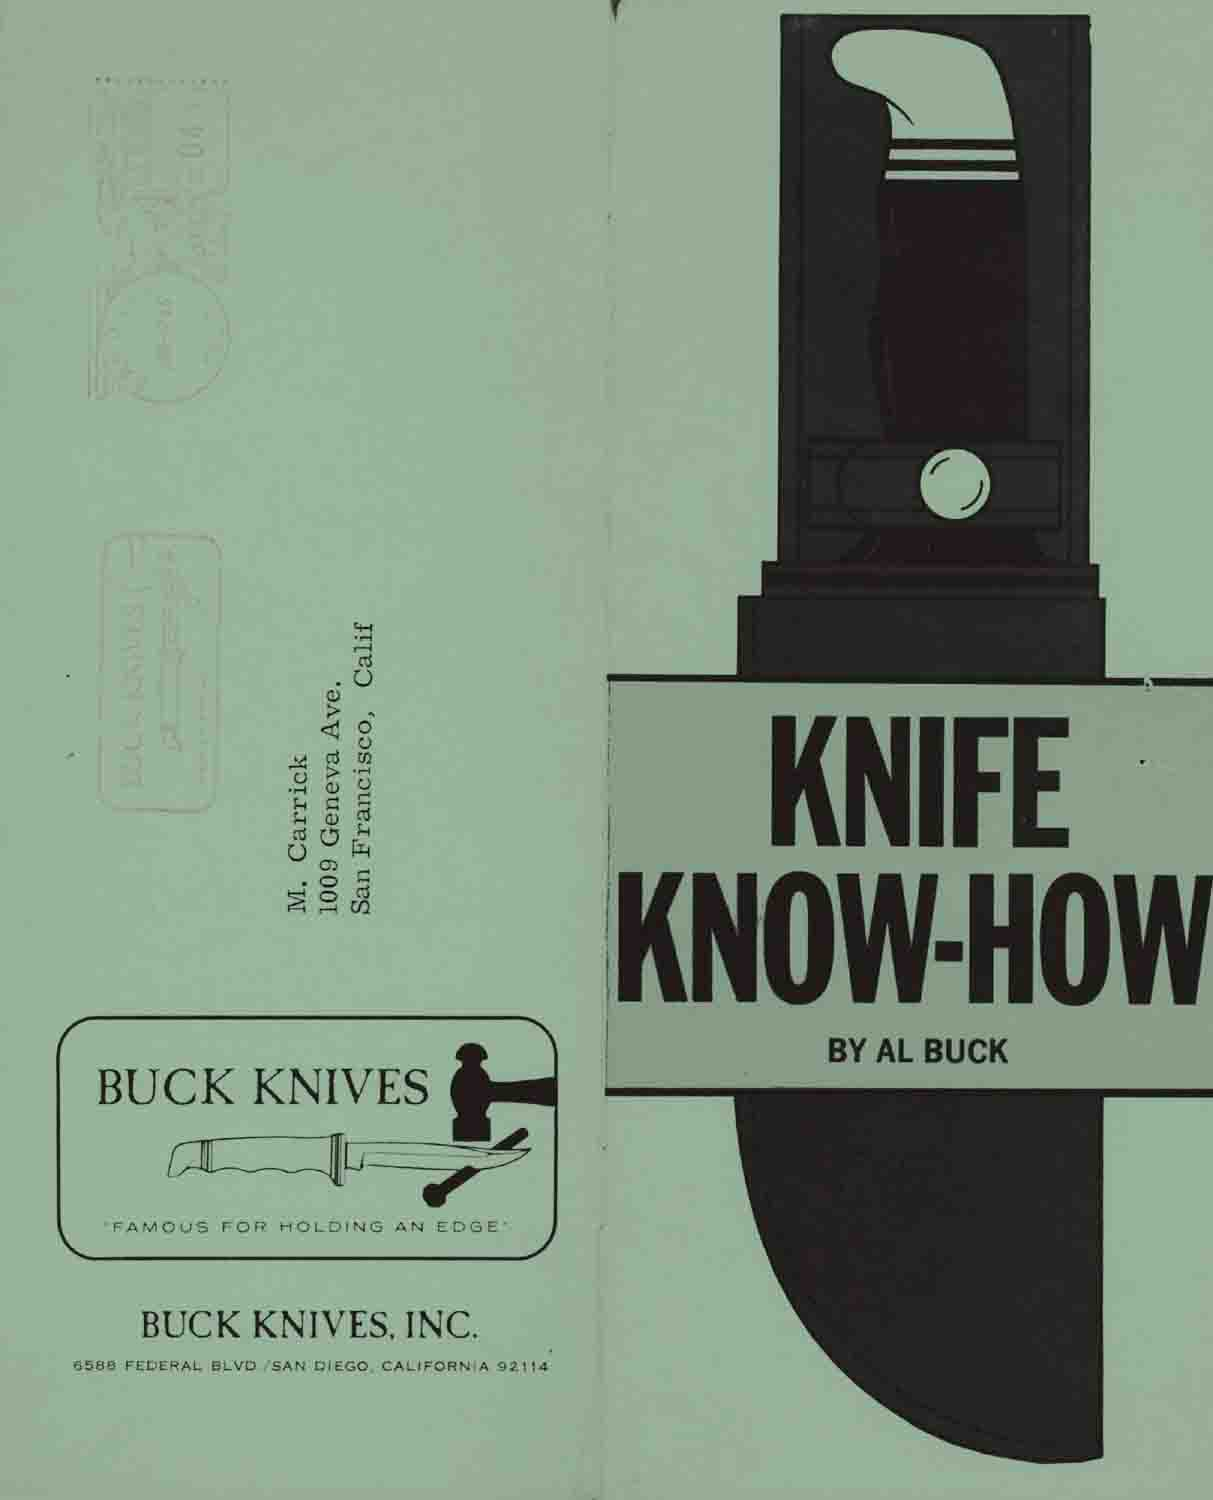 Buck Knives 1966 Knife Know-How, San Diego, CA